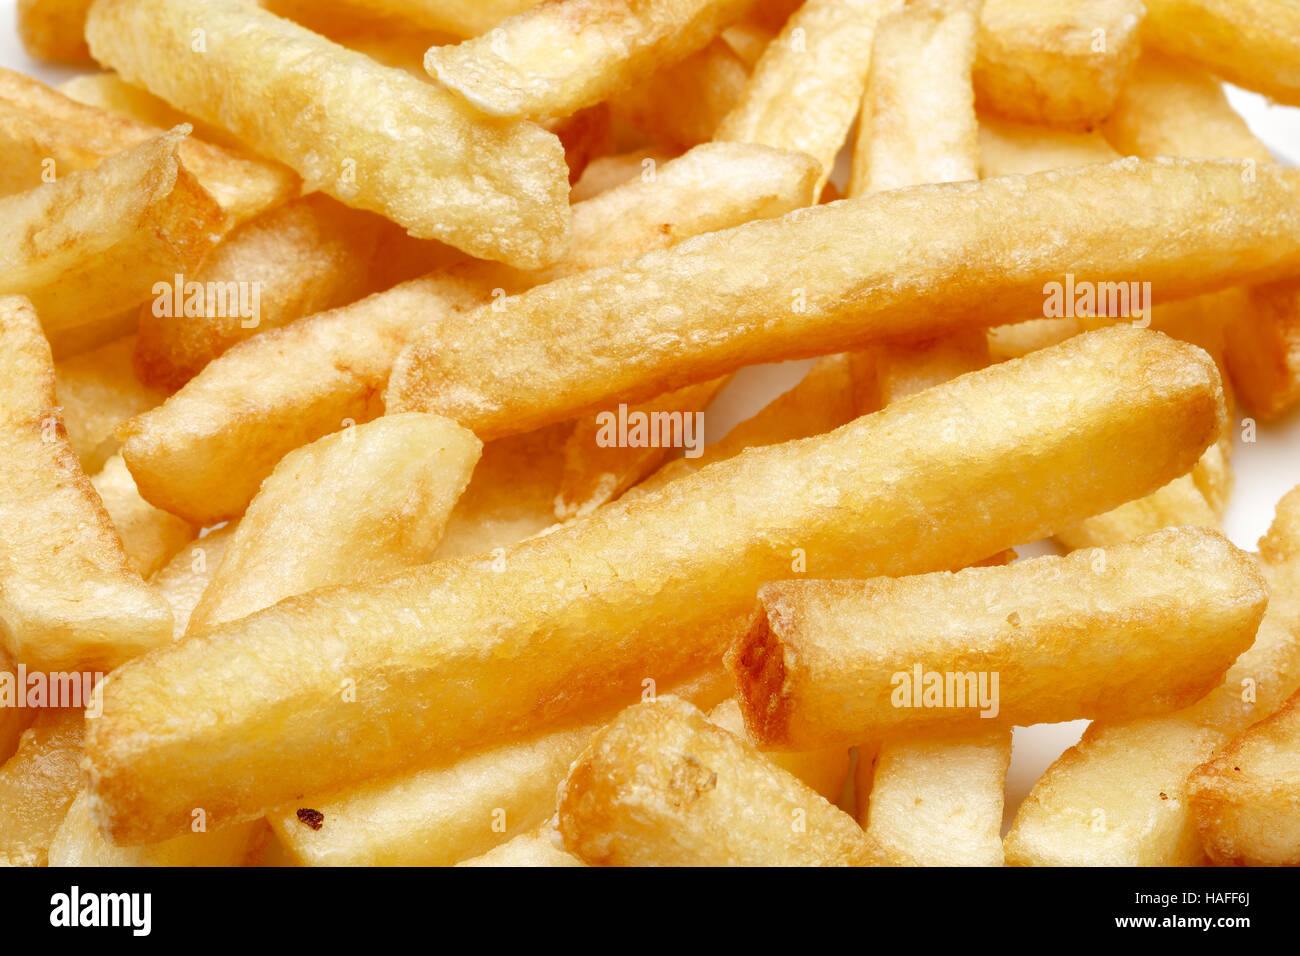 A pile of appetizing french fries on a white background. - Stock Image